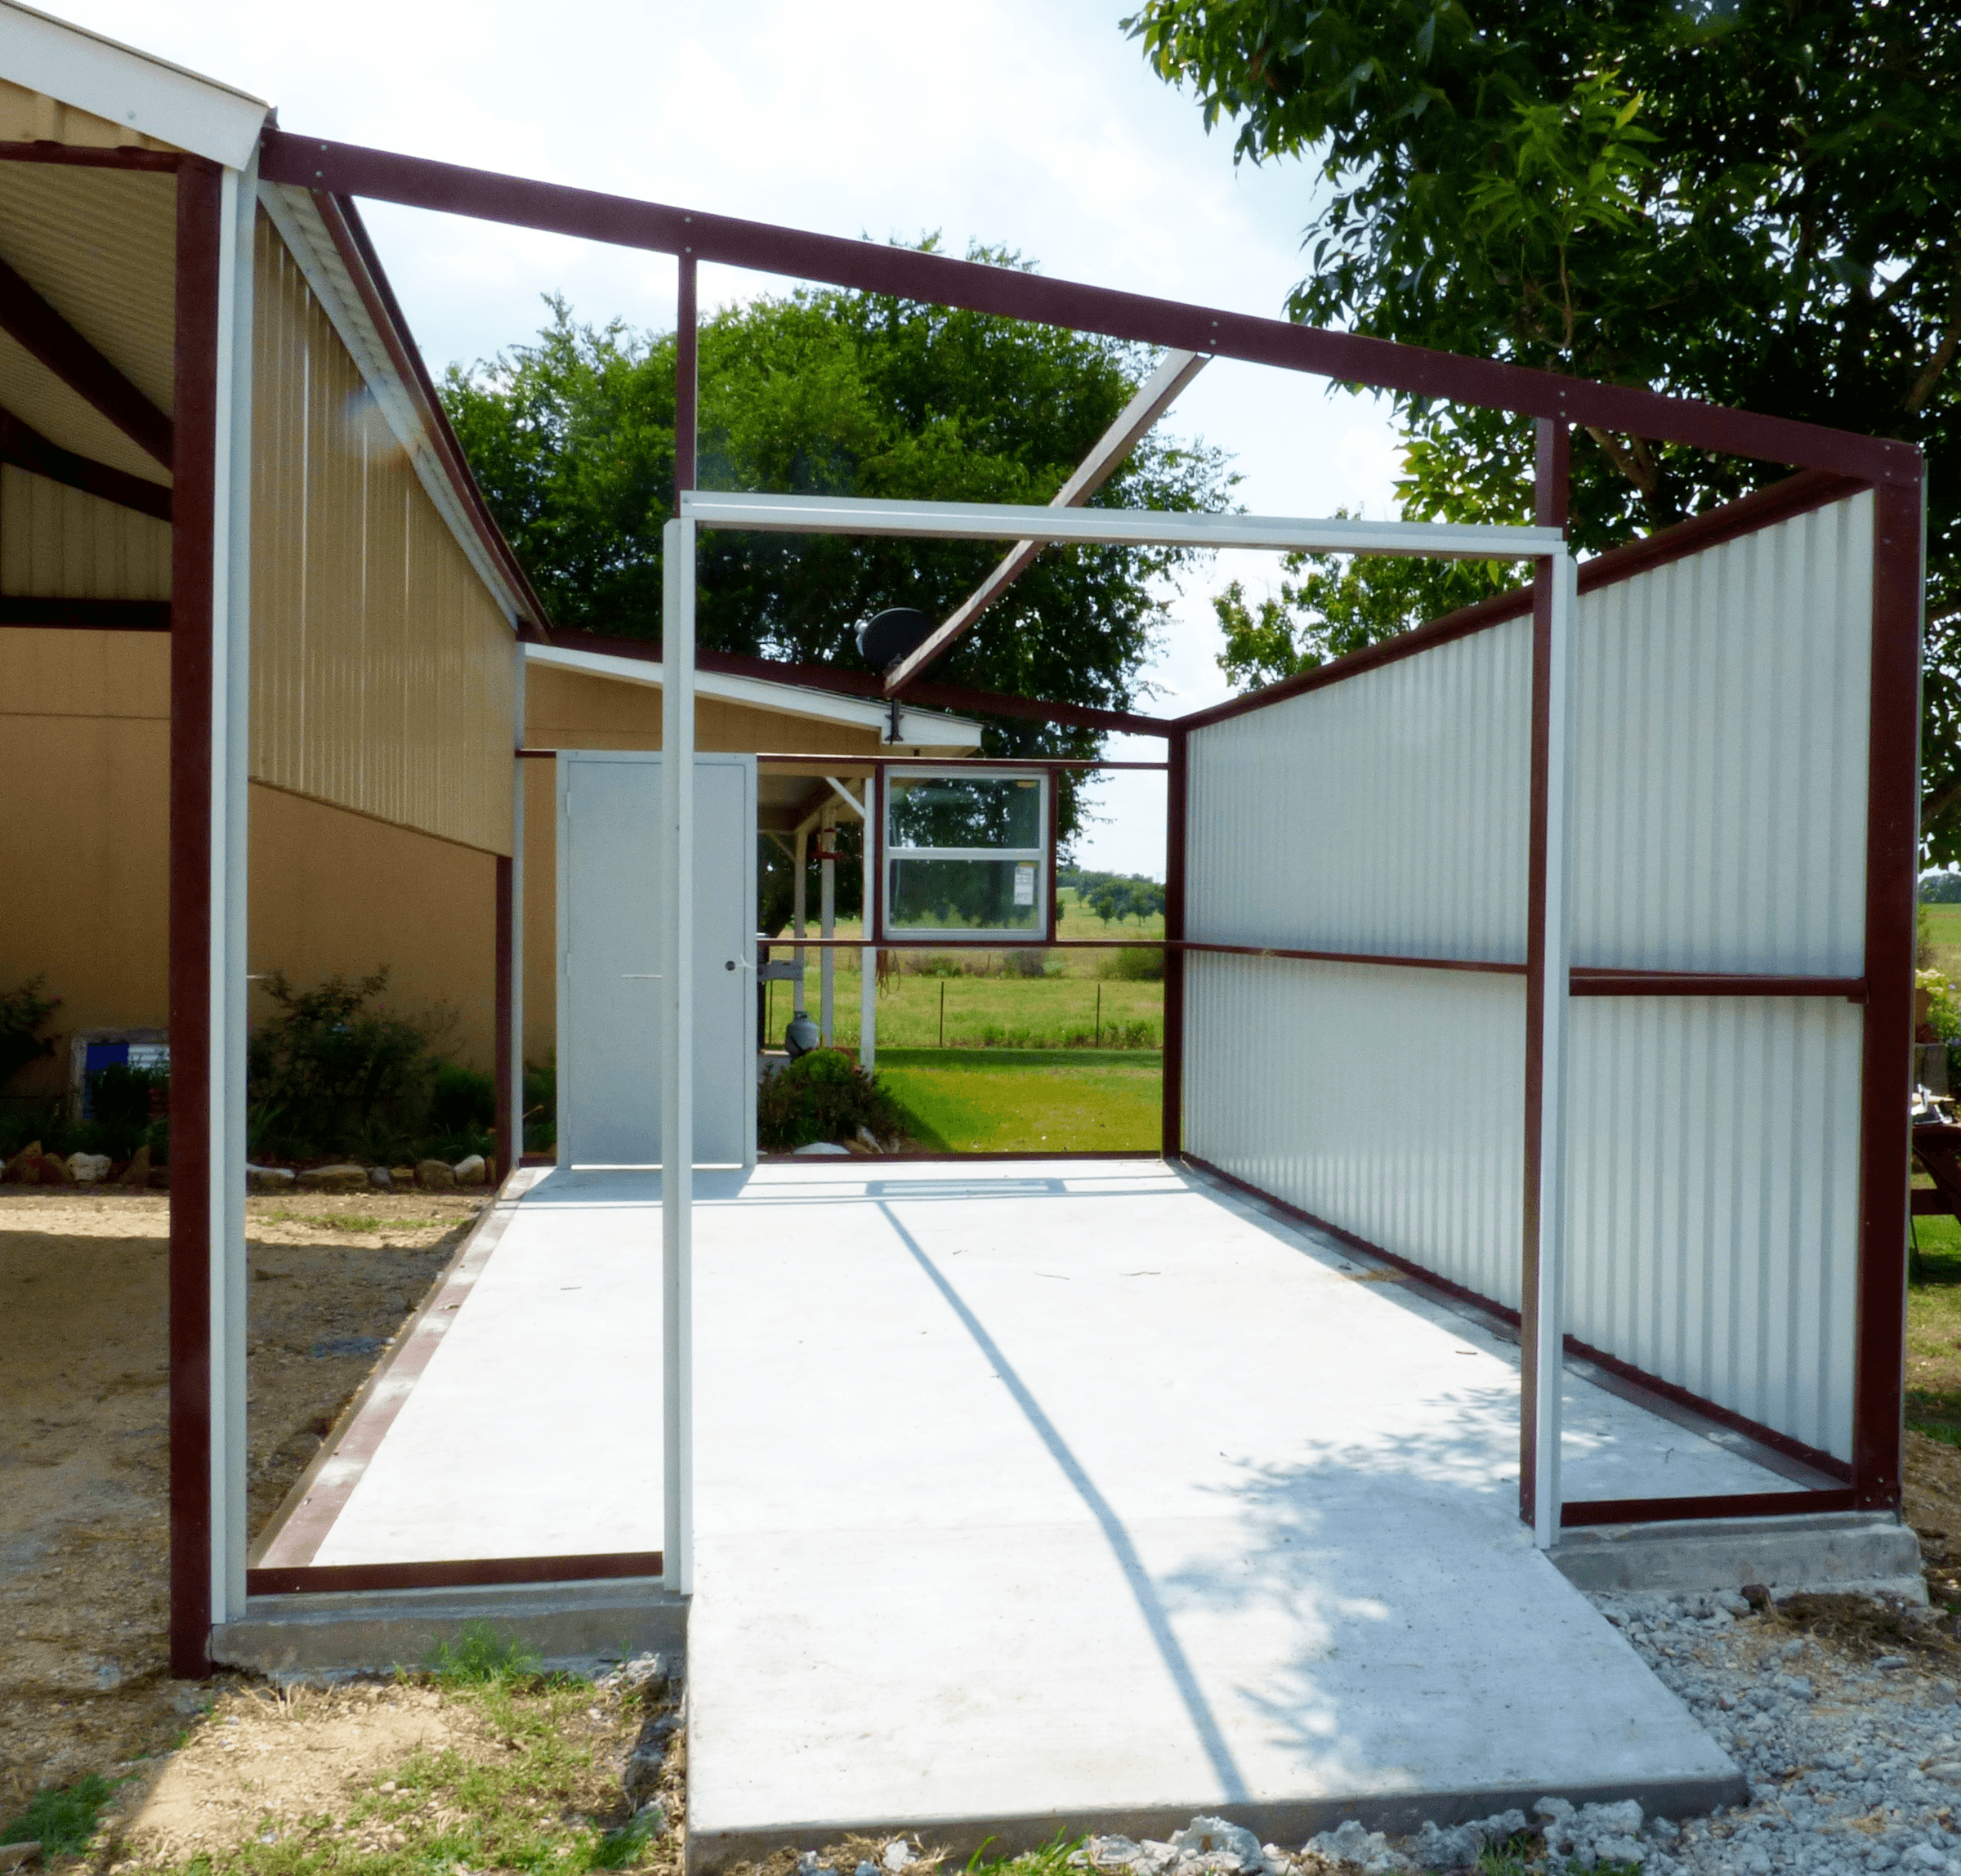 We poured a concrete pad and connected this building to the existing carport.